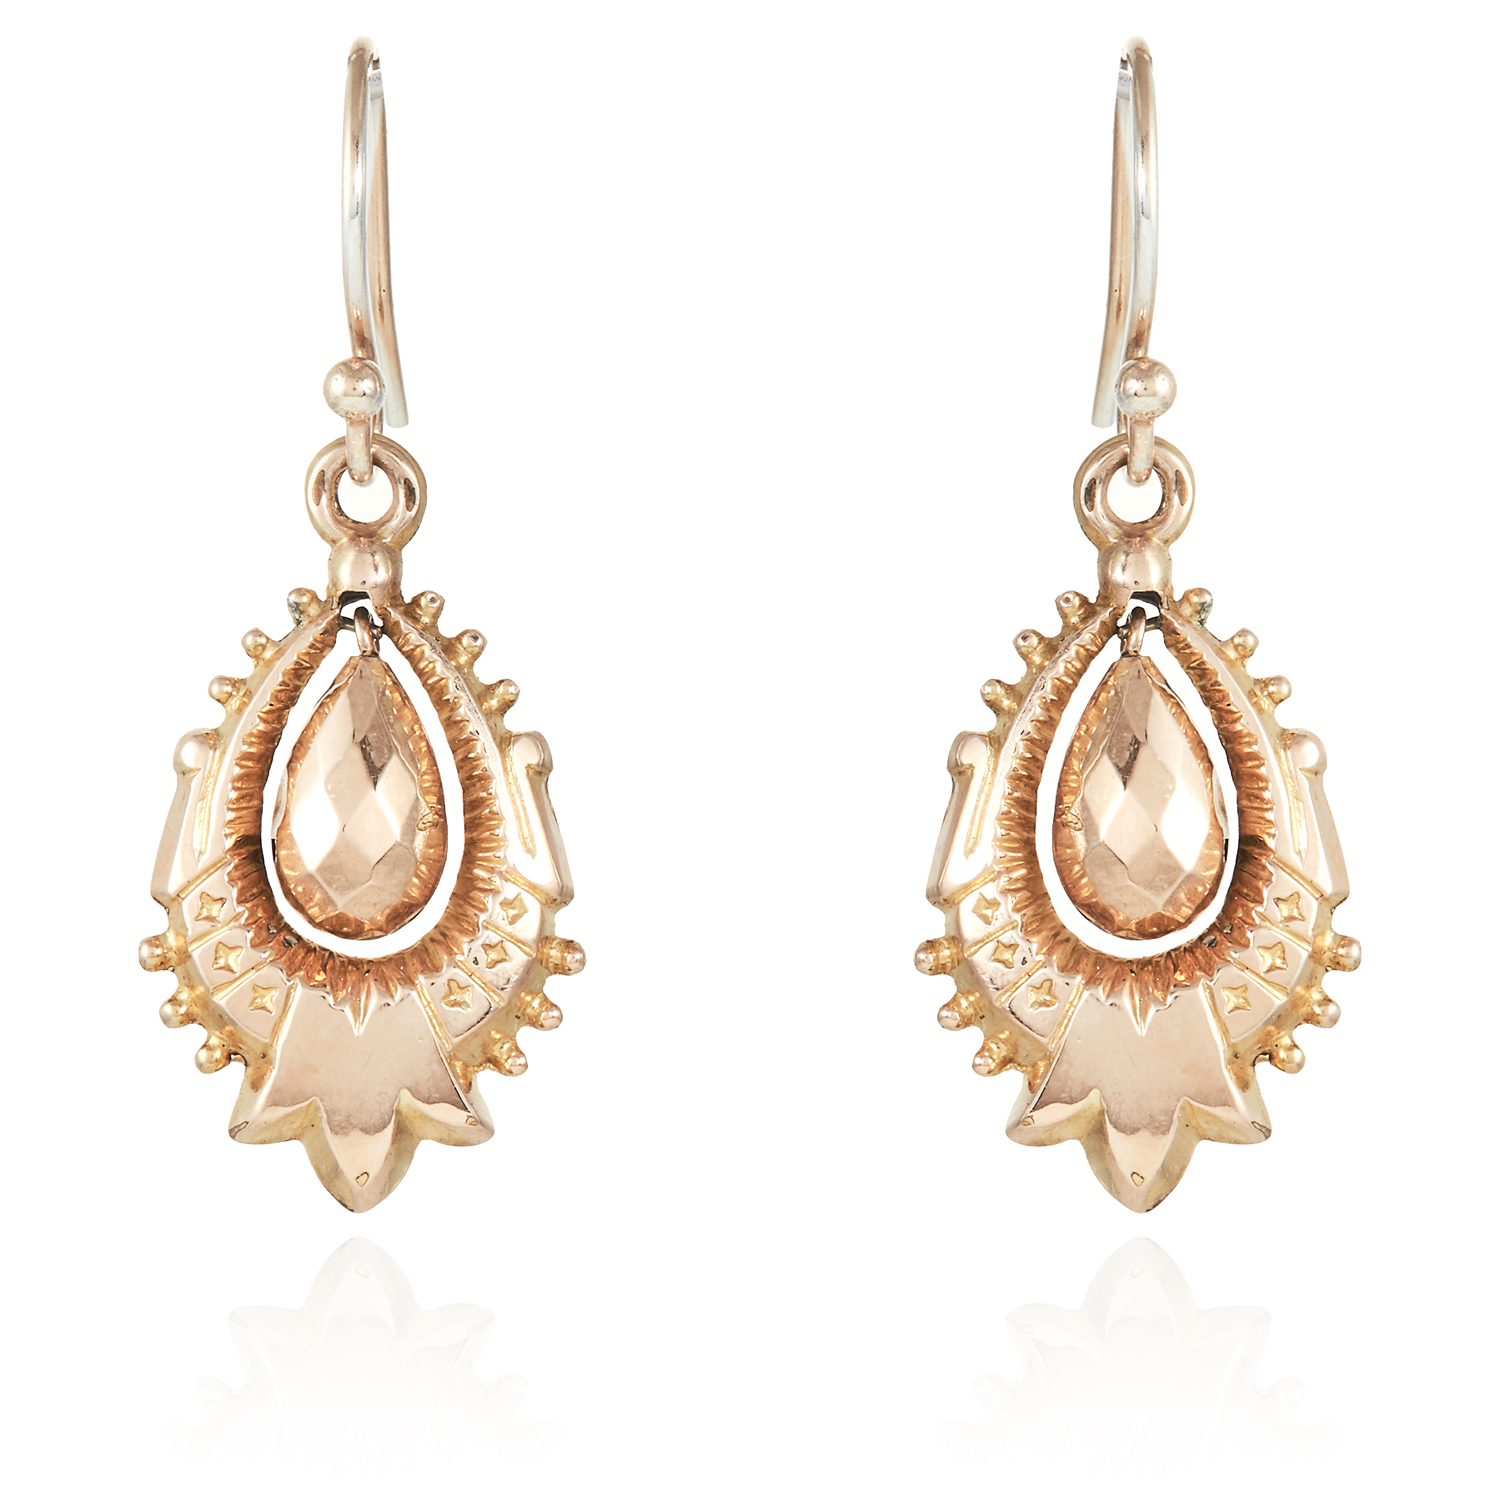 Los 38 - A PAIR OF ANTIQUE ARTICULATED DROP EARRINGS, 19TH CENTURY in yellow gold, unmarked, 3.9cm, 2.4g.